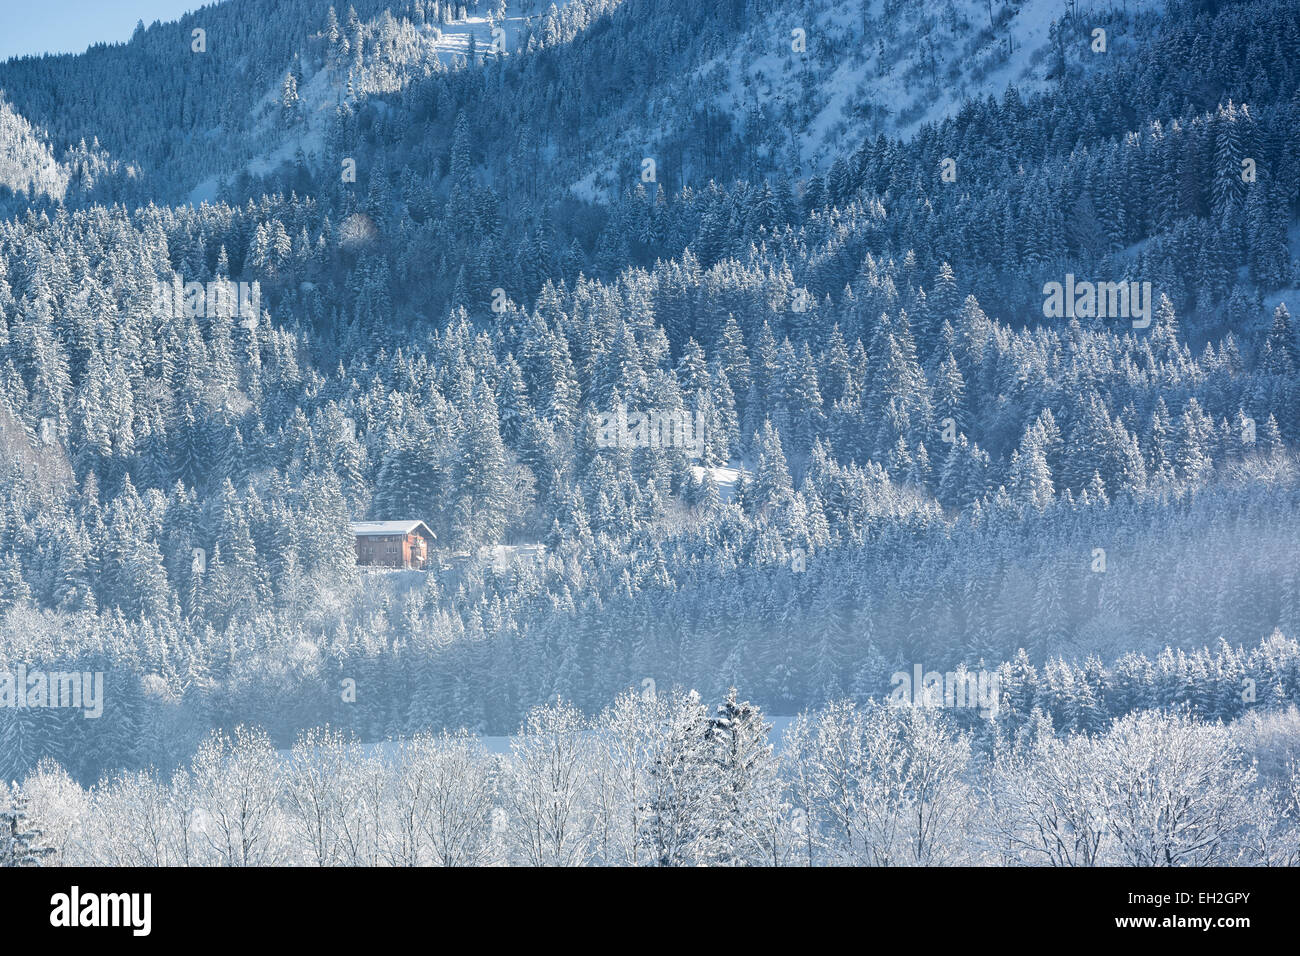 Alpine hut in wintery forest, Bavaria, Germany - Stock Image